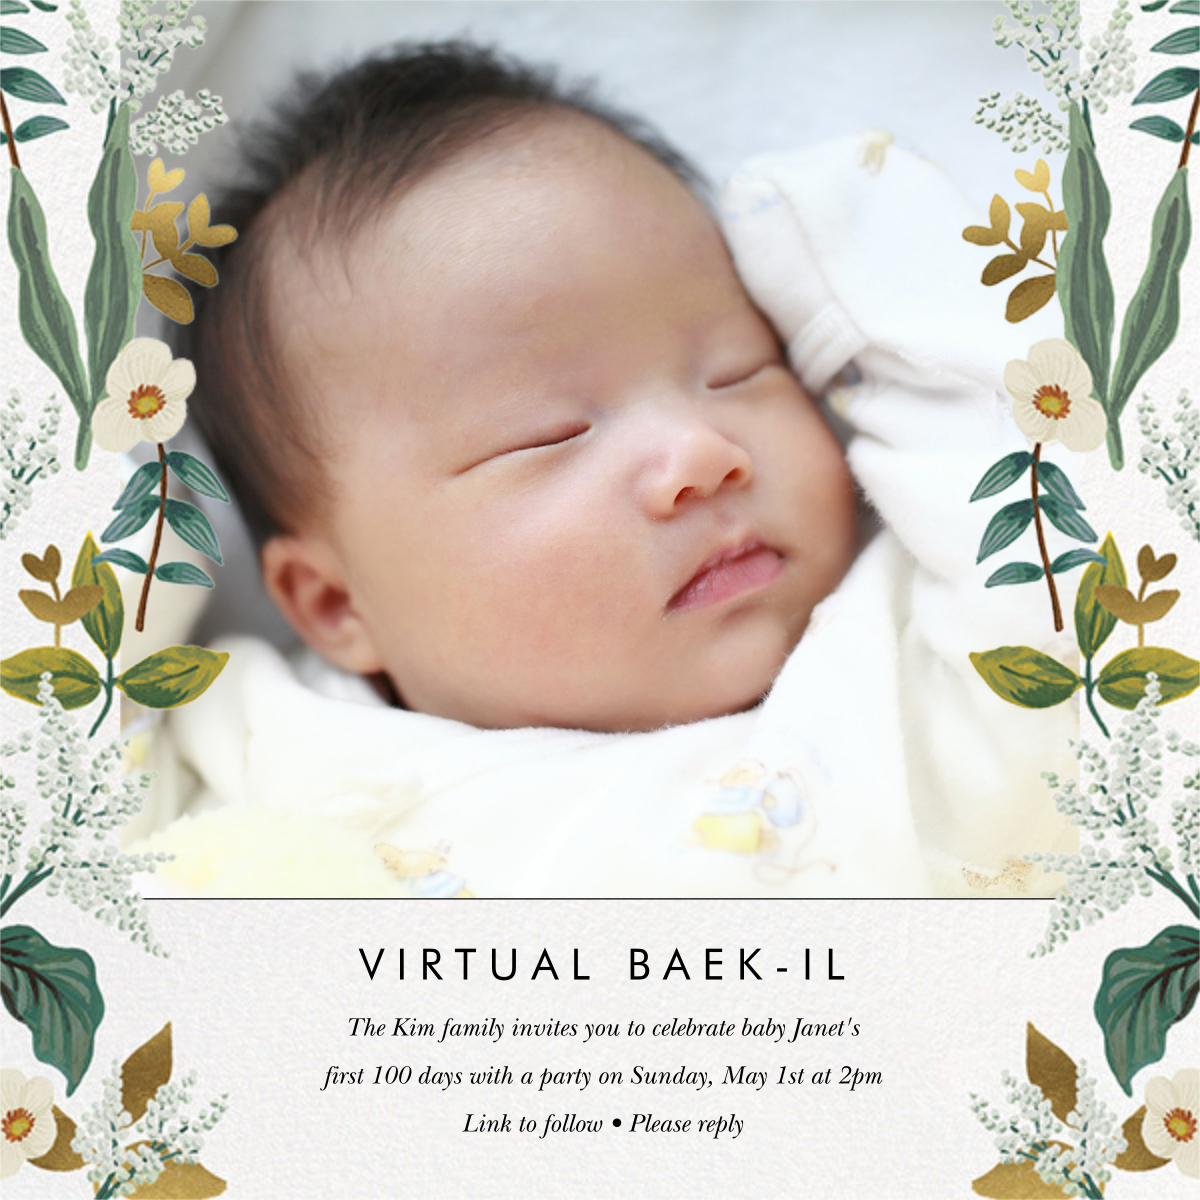 Meadow Garland Photo - Rifle Paper Co. - Virtual parties